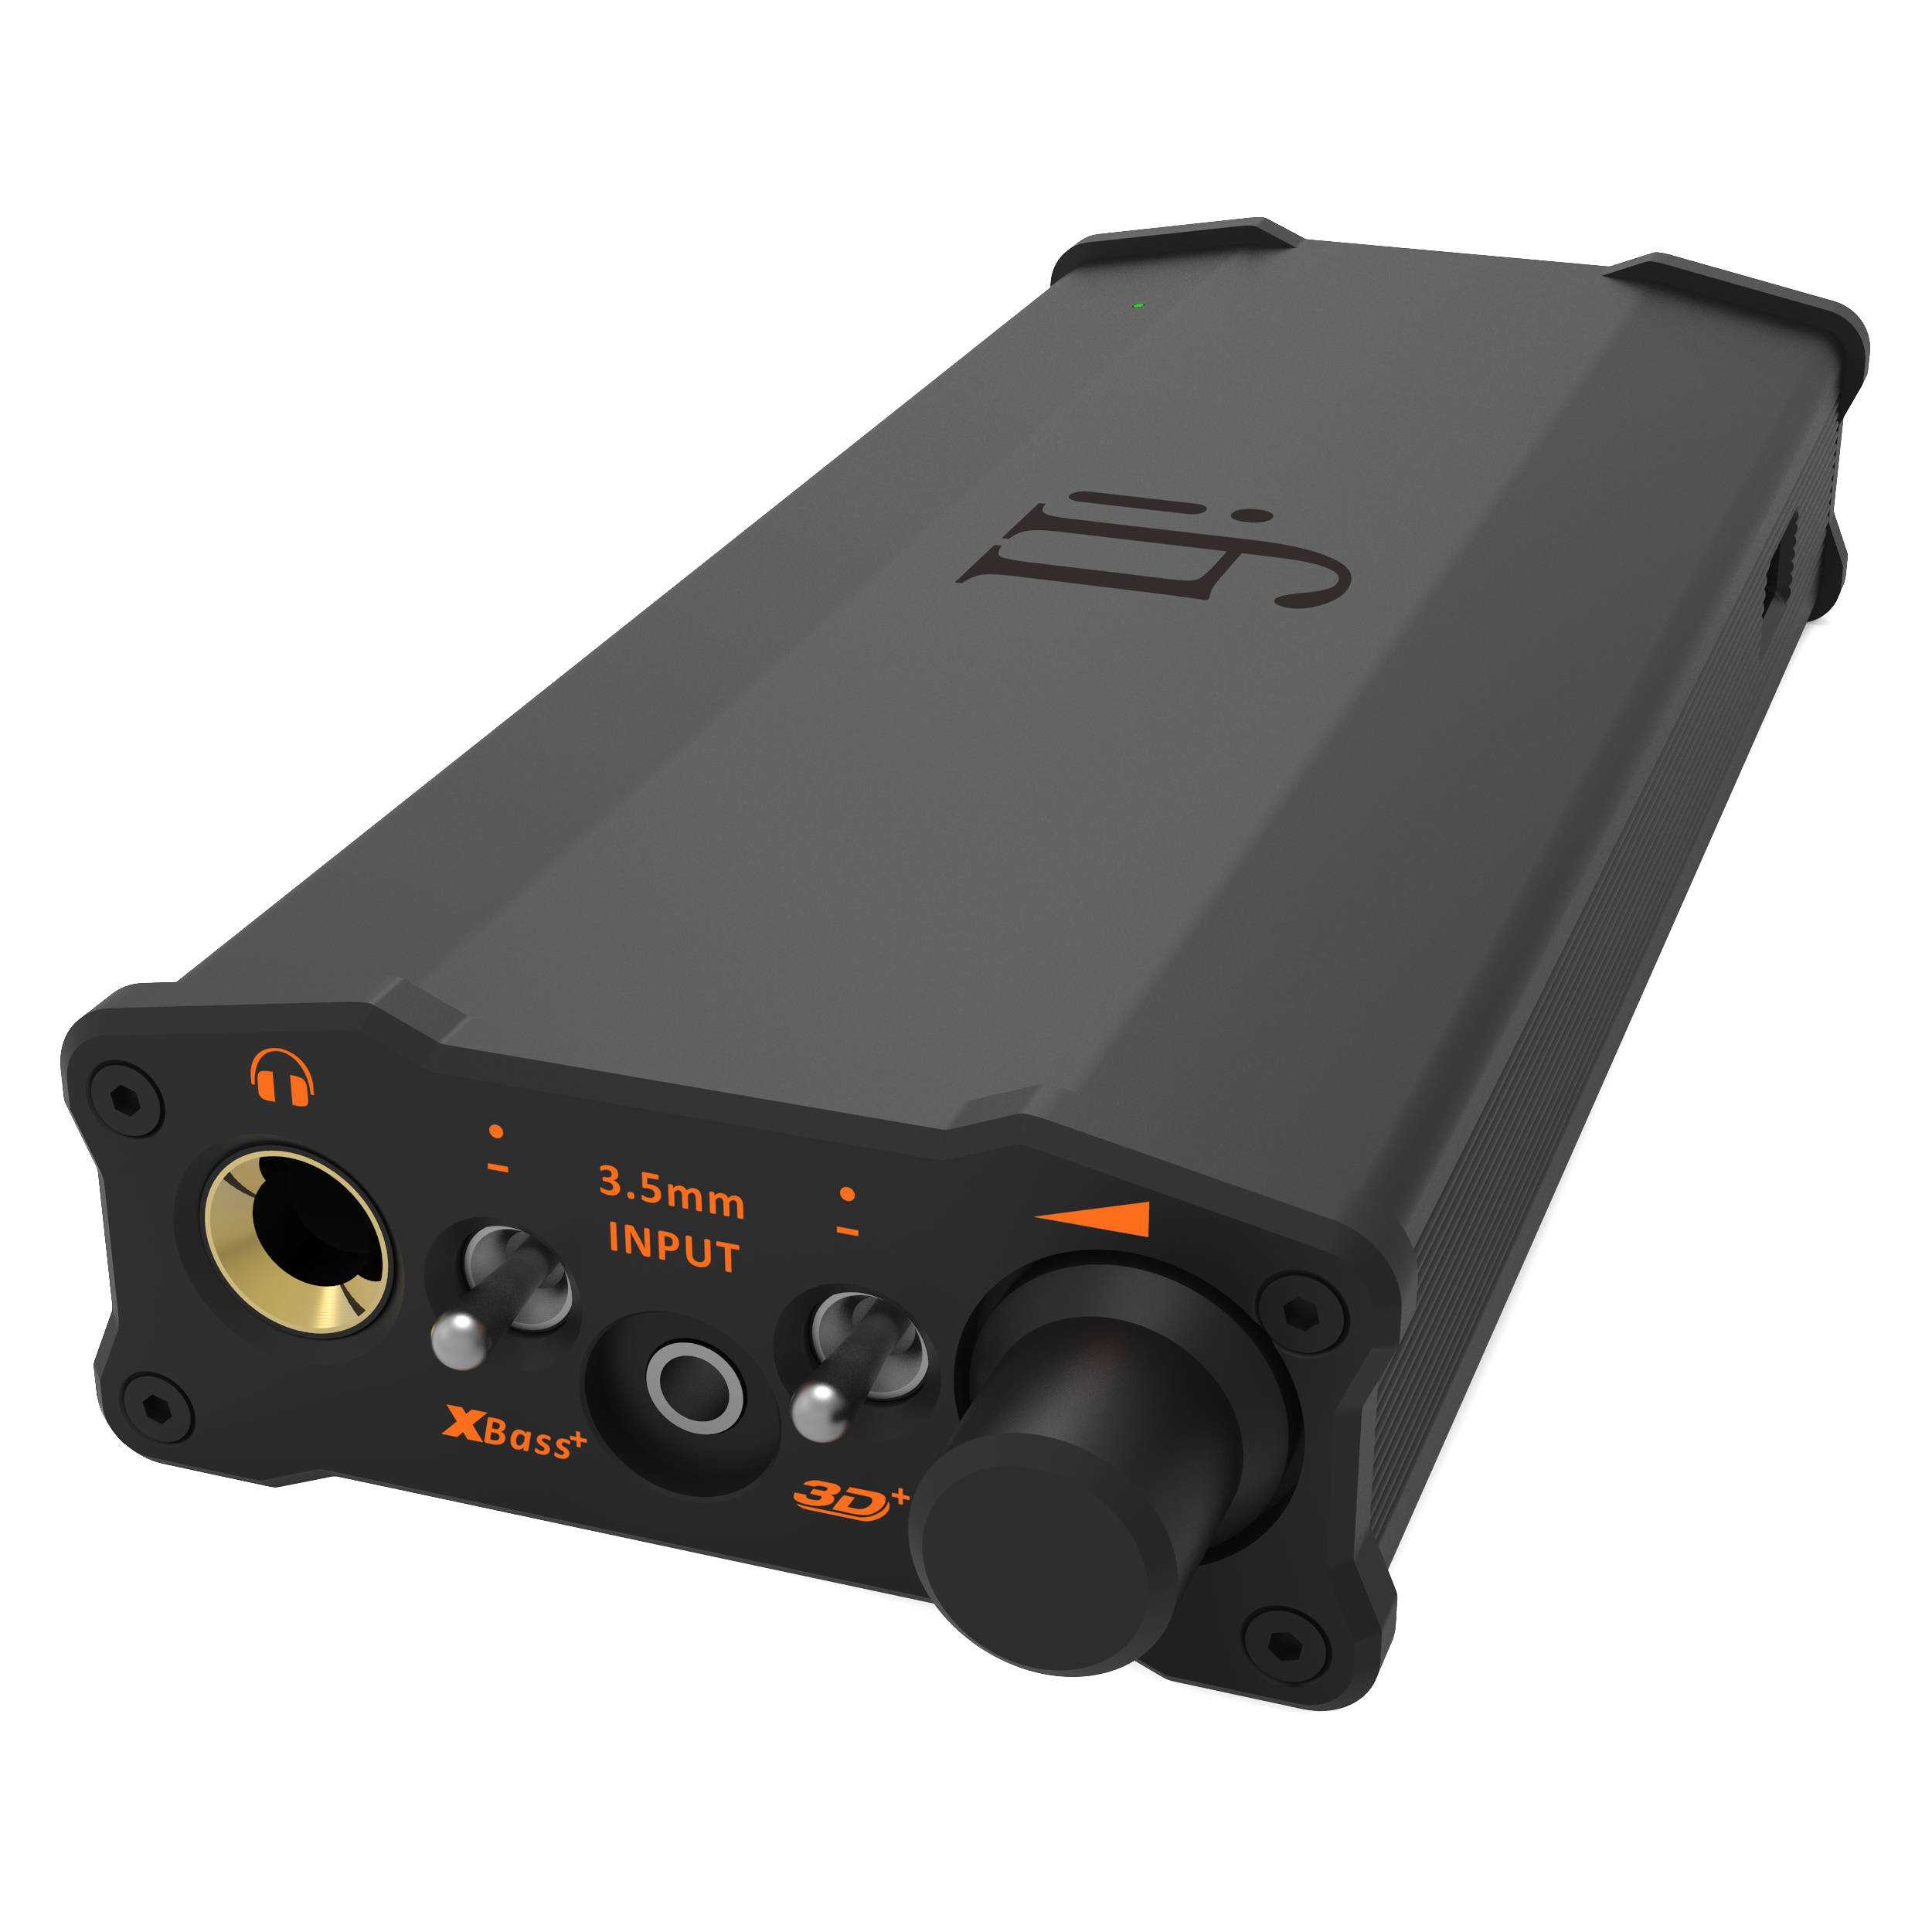 Ifi Audio Micro Idsd Black Label Portable Dac Headphone 303014 Opamp For Accelerometers39 Charge Amplifier Precision Amplifiers Amp High Resolution